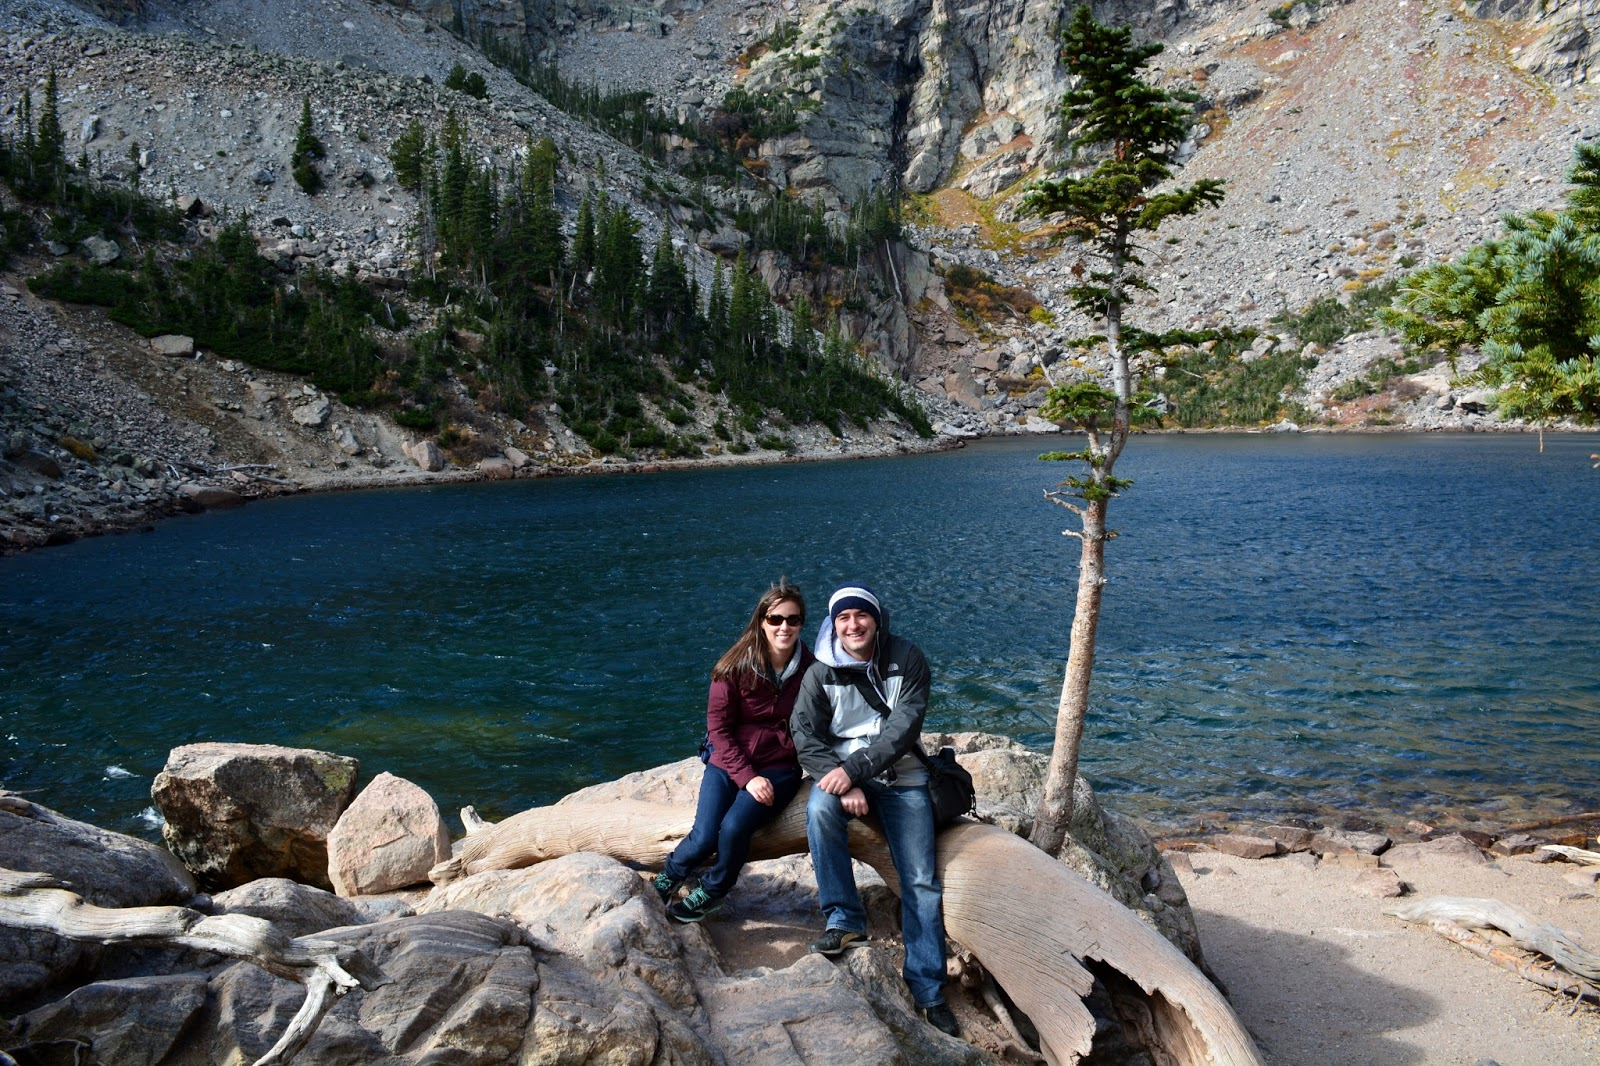 cozy birdhouse | emerald lake at rocky mountain national park